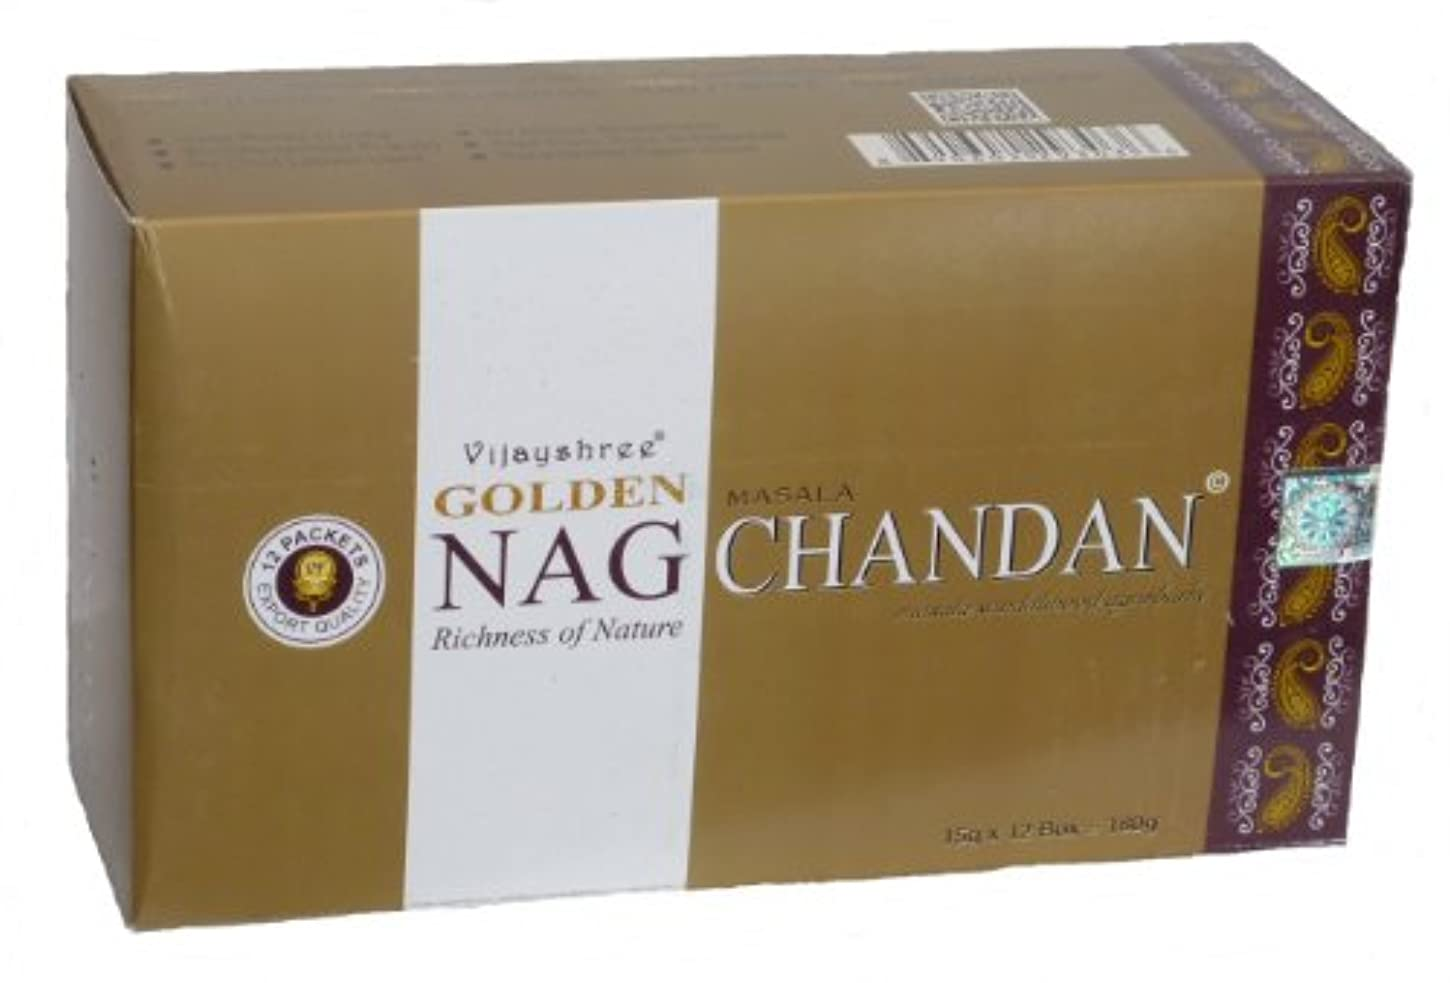 180 gms Box of GOLDEN NAG CHANDAN Masala Agarbathi Incense Sticks - in stock and shipped by Busy Bits by Golden...